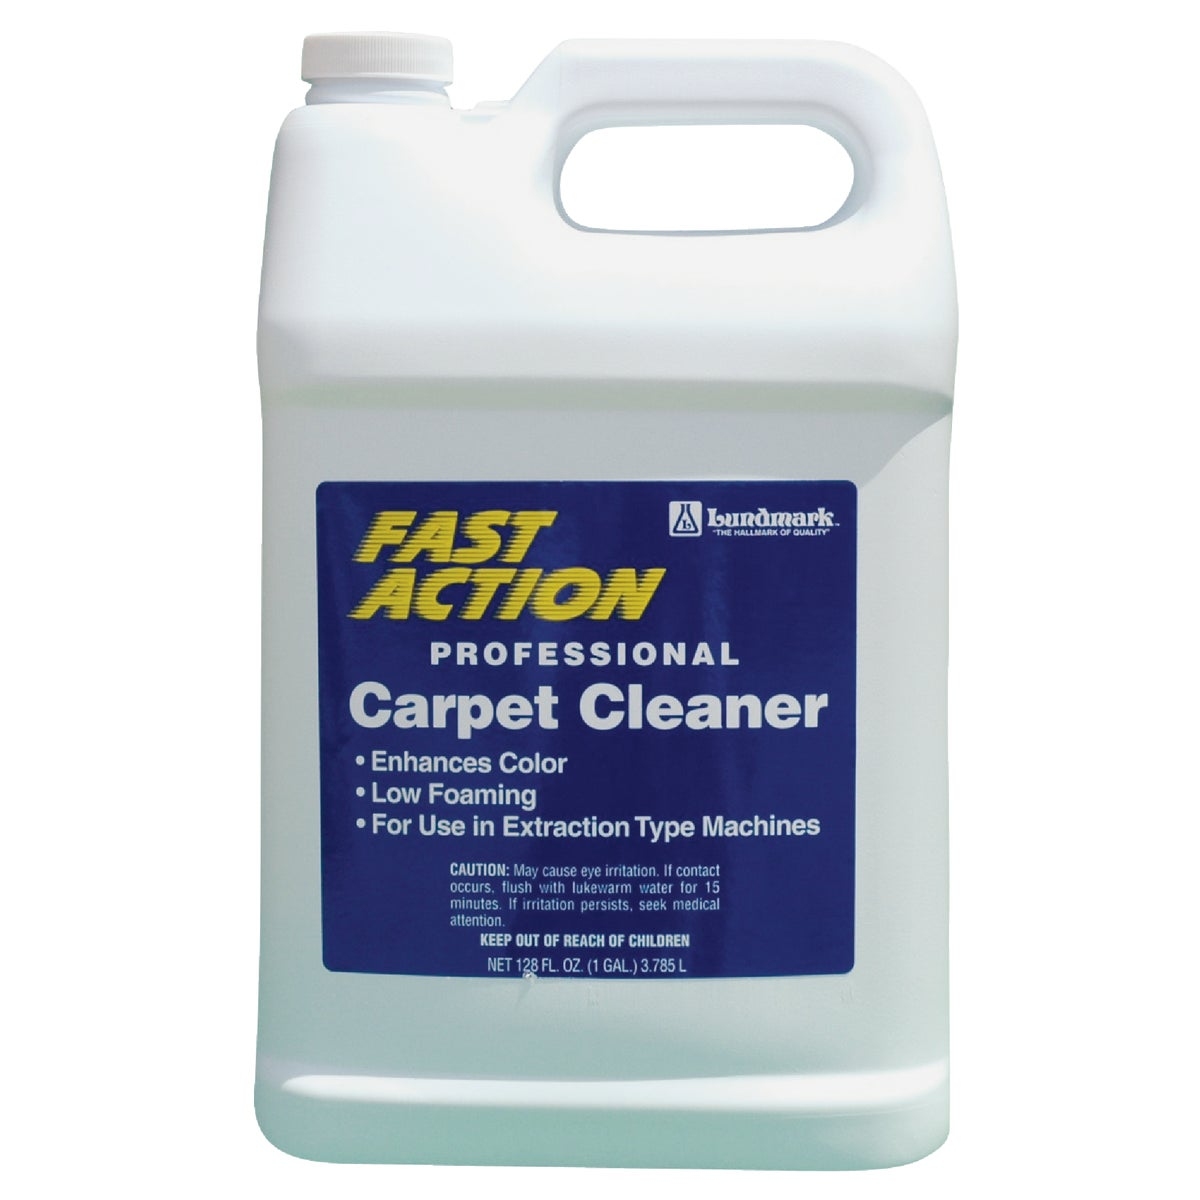 128OZ CARPET CLEANER - 6233G01-2 by Lundmark Wax Co